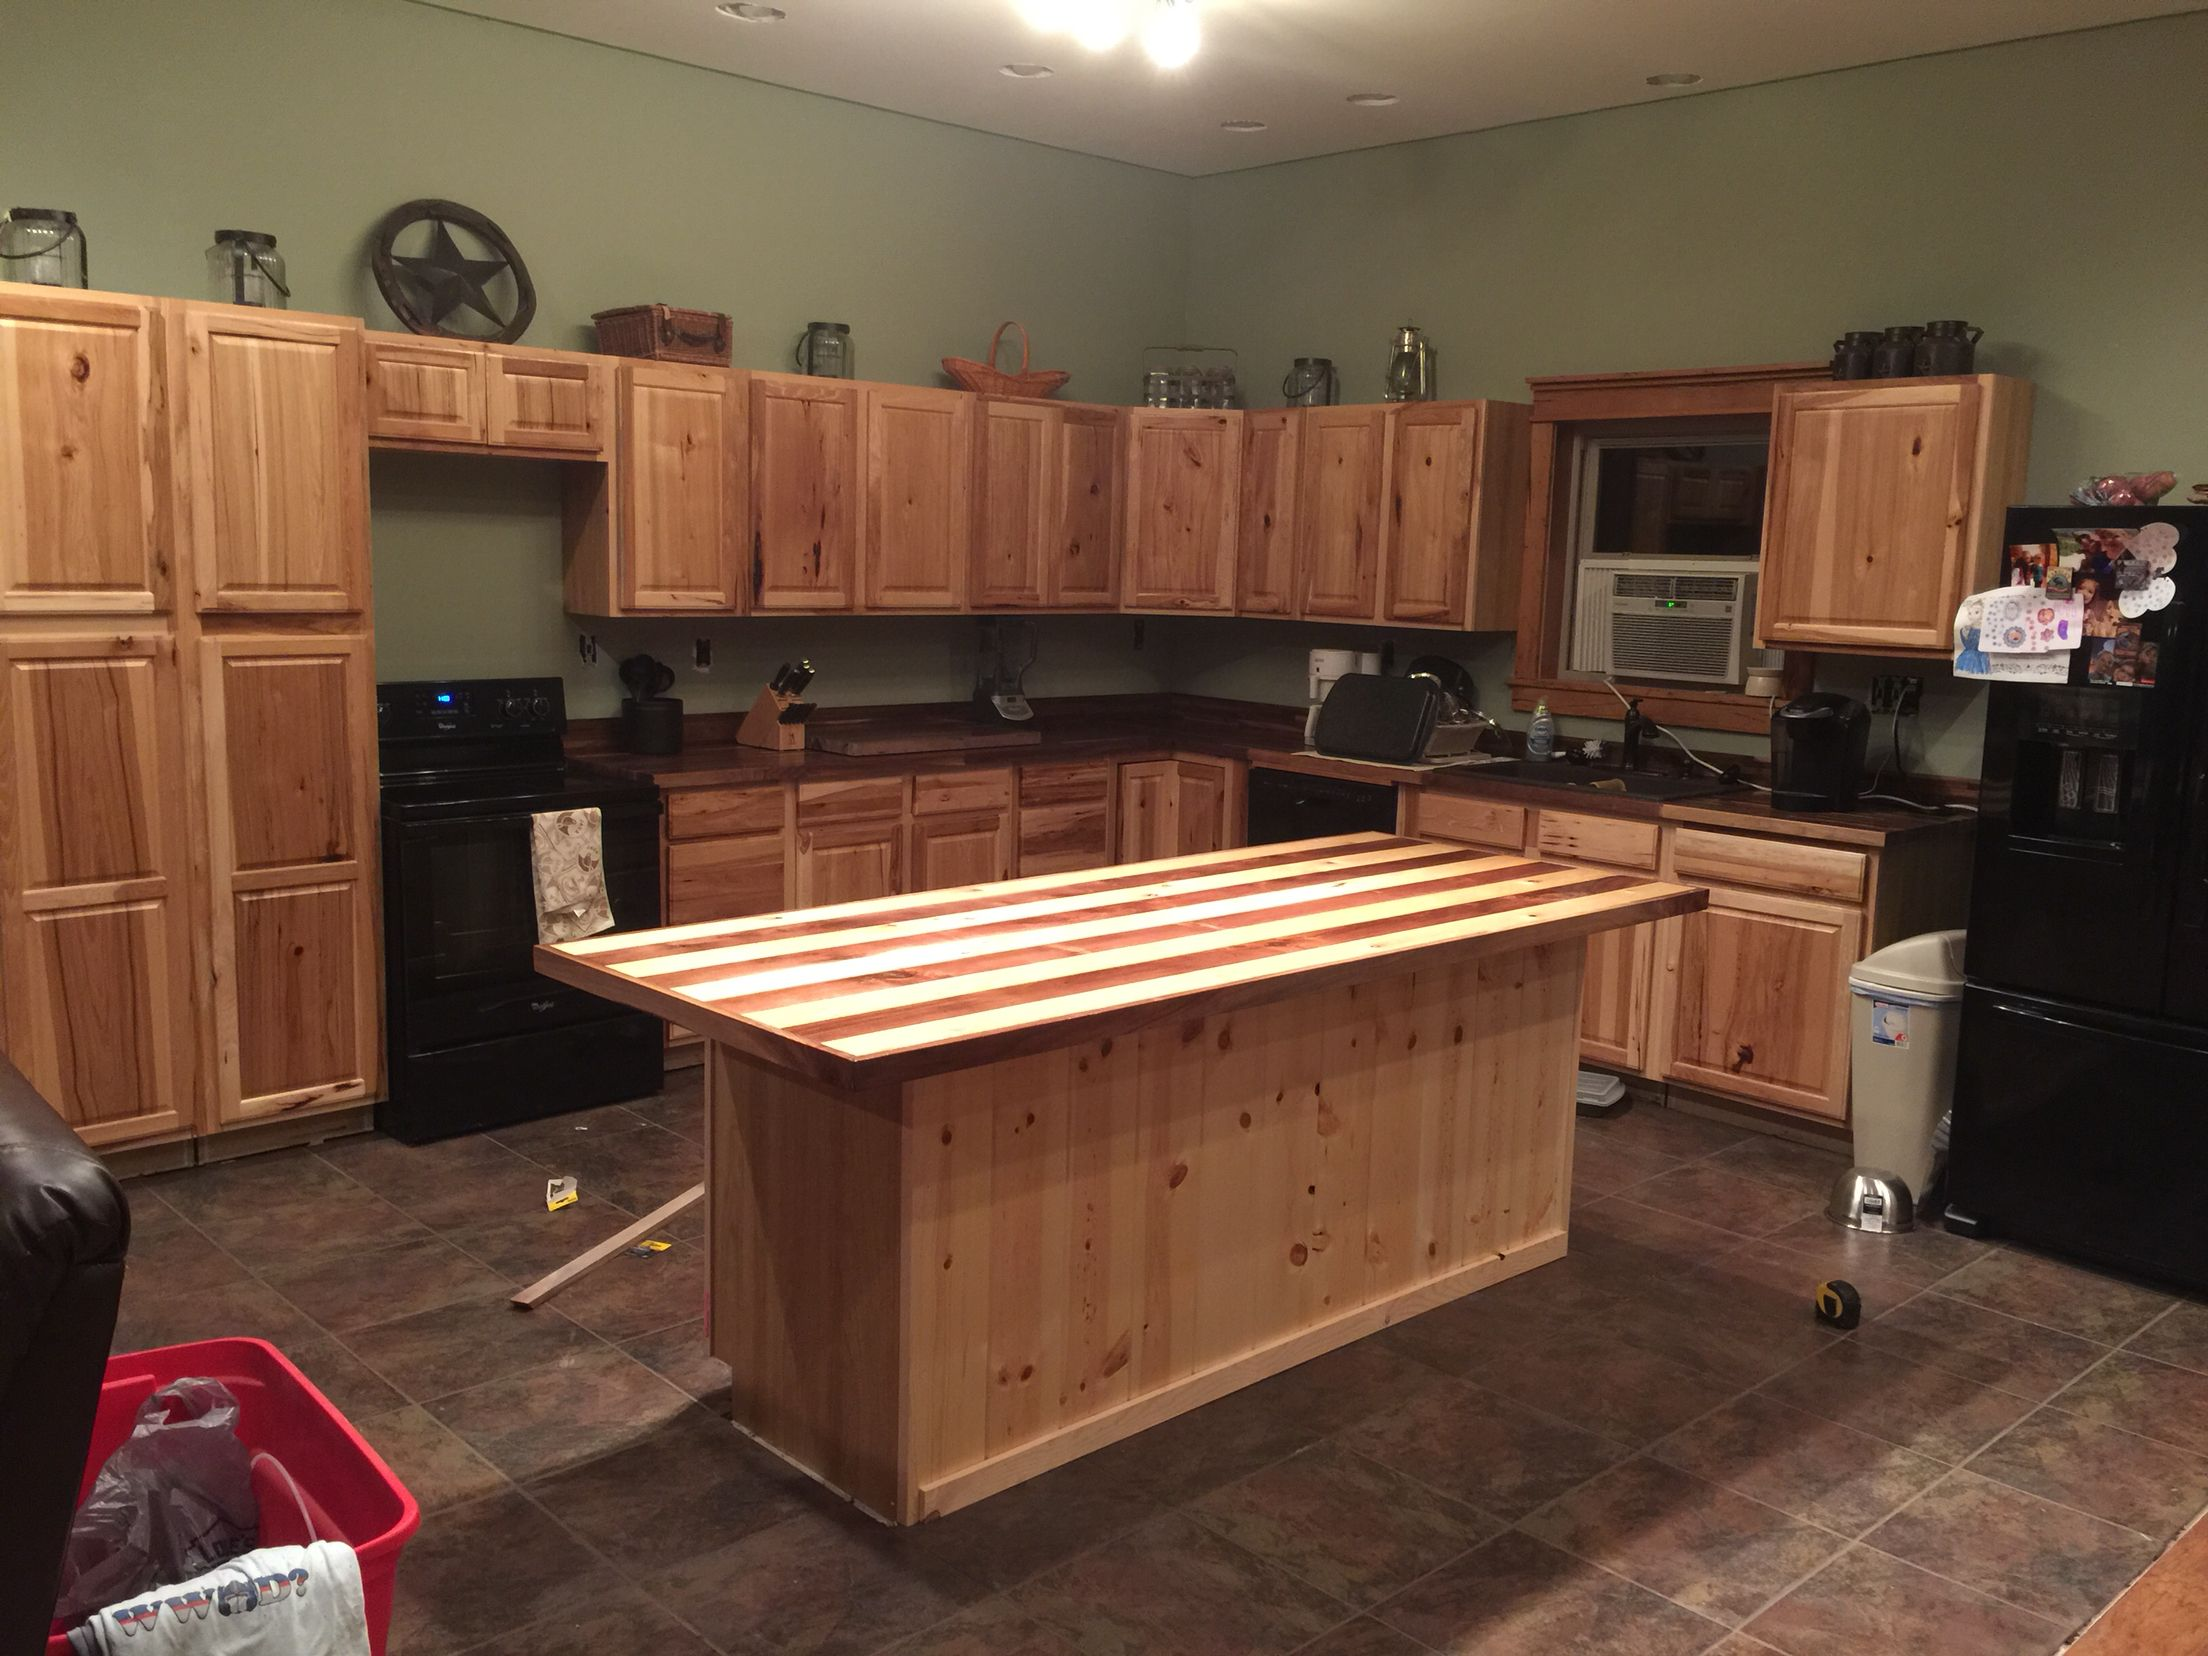 Incroyable Kitchen Overview; Hickory Cabinets From Lowes, Walnut Butcher Block  Countertop From Lumber Liquidators, Custom Walnut/Sassafras Island Top,  Marazza Tile ...